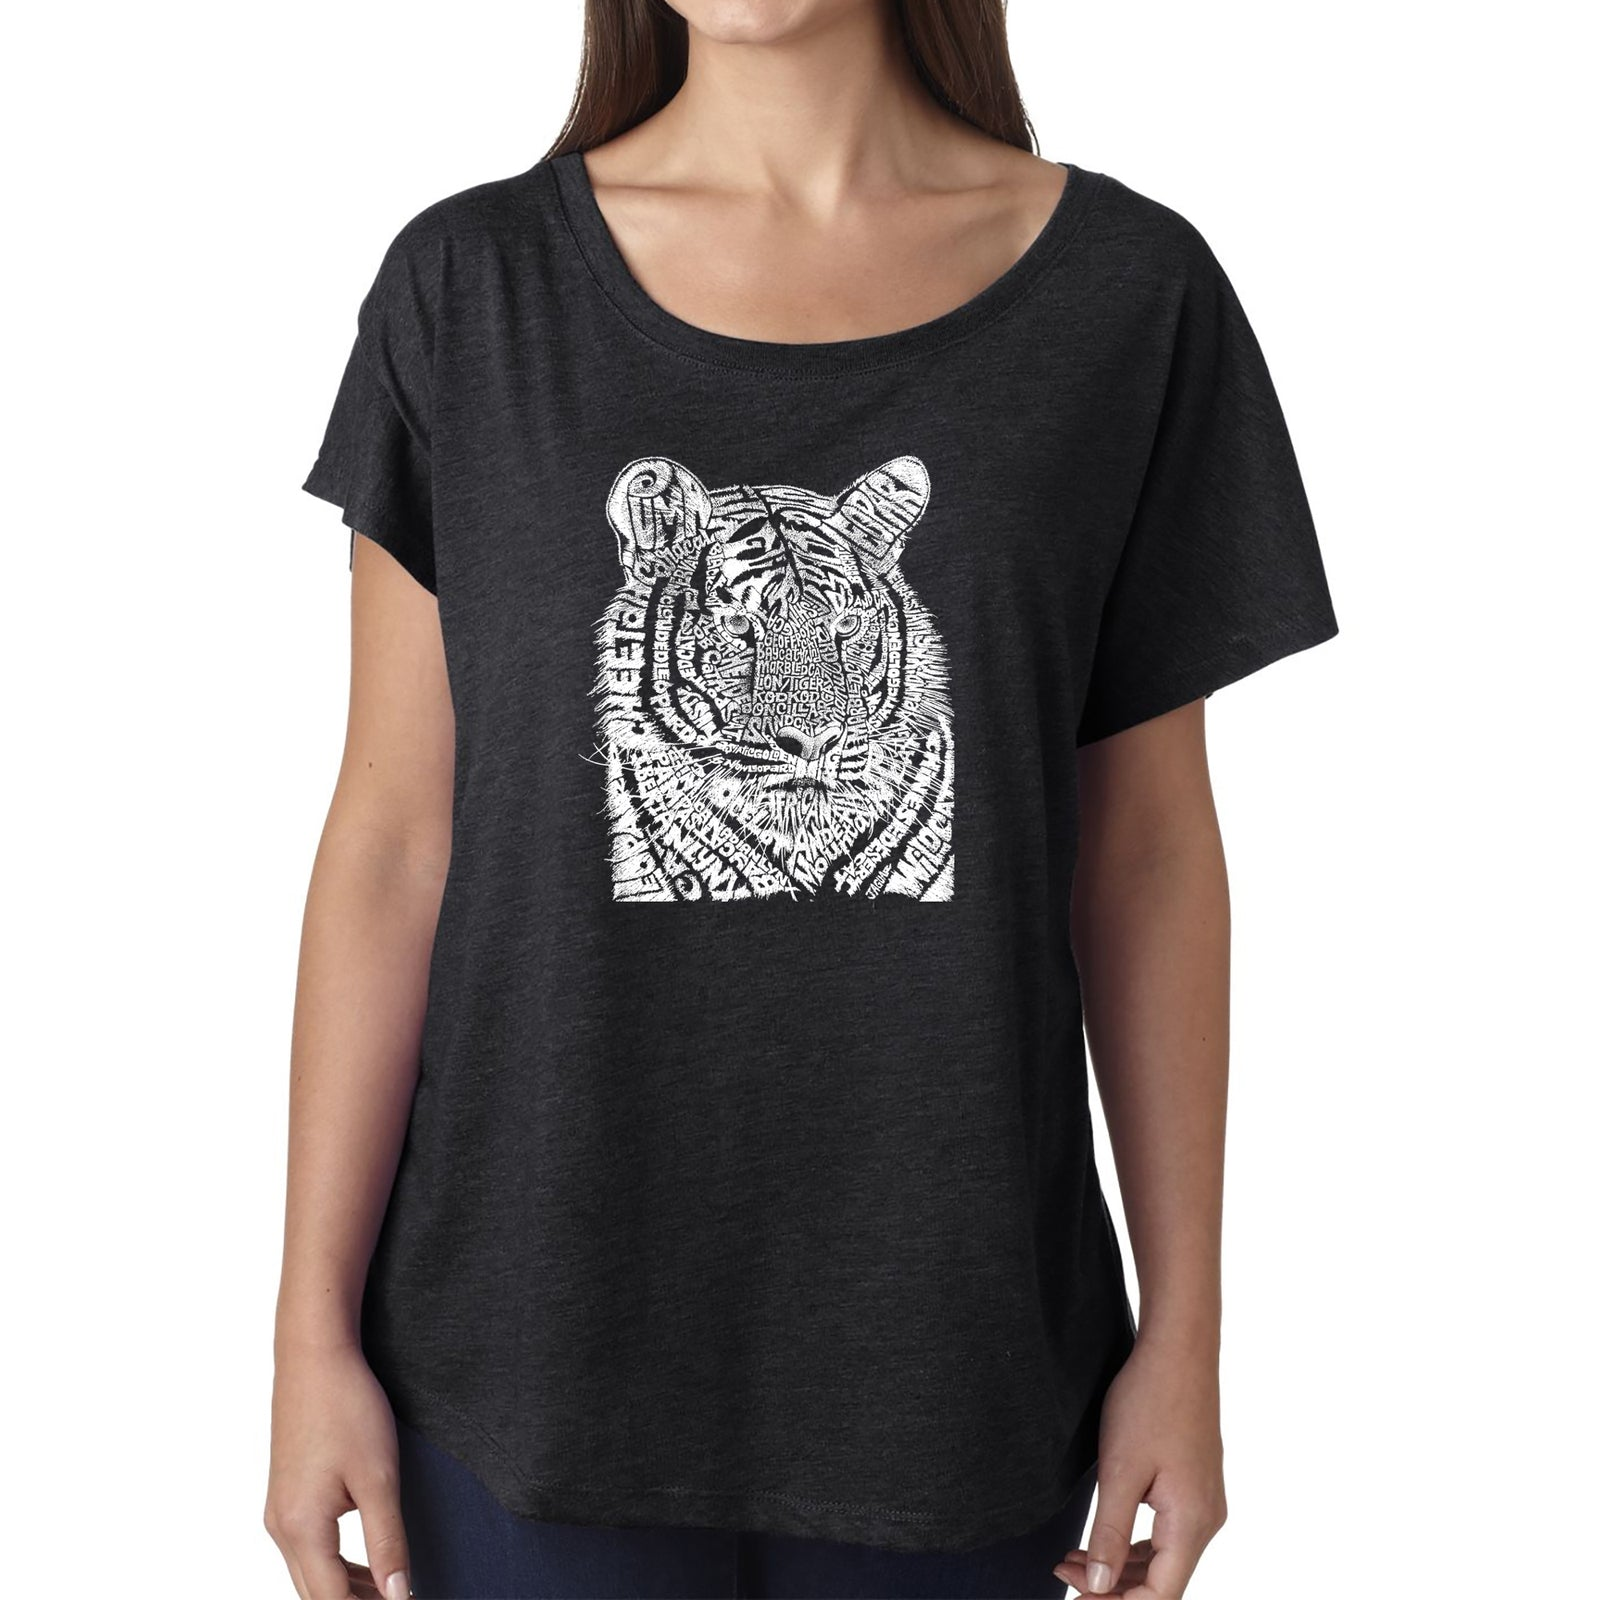 Women's Loose Fit Dolman Cut Word Art Shirt - Big Cats